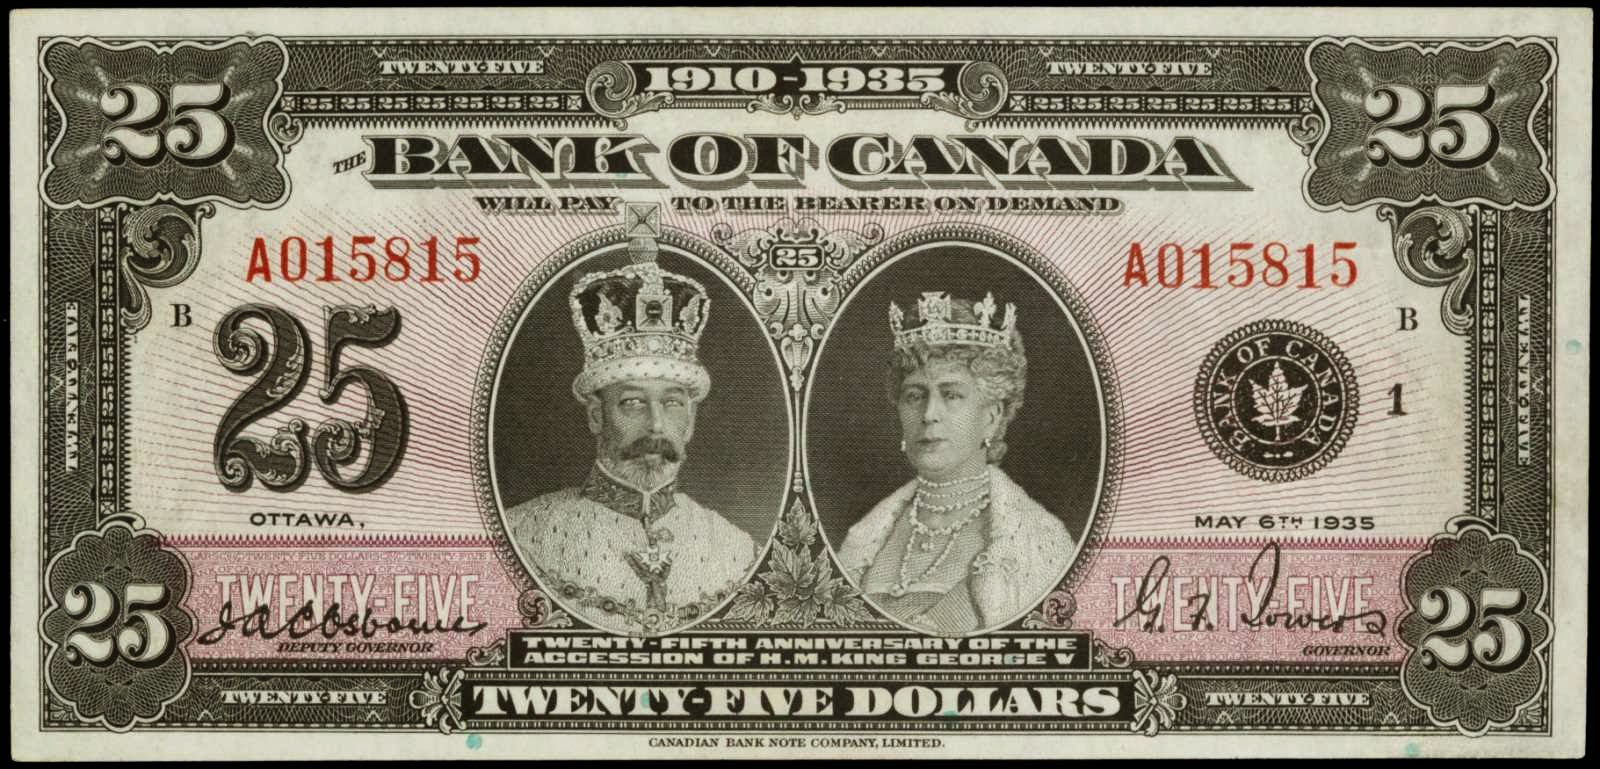 Bank of Canada 25 Dollars Commemorative note 1935, Silver Jubilee of the reign of King George V